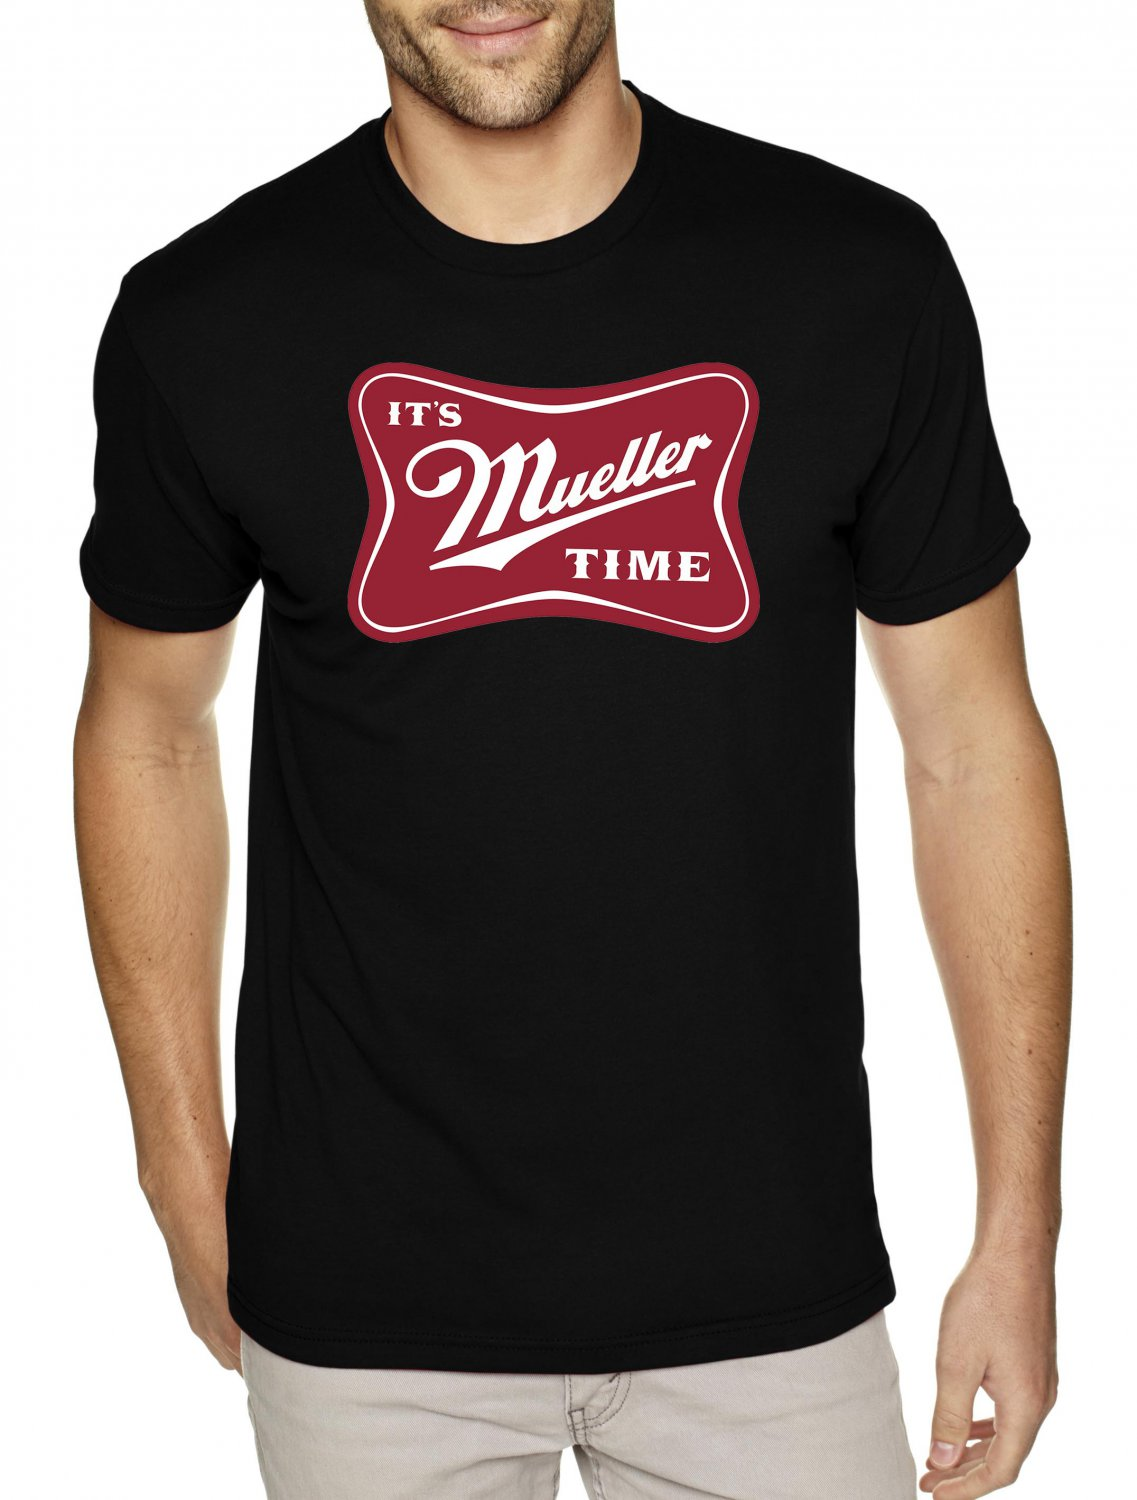 IT'S MUELLER TIME shirt - Premium Sueded Shirt SIZE M